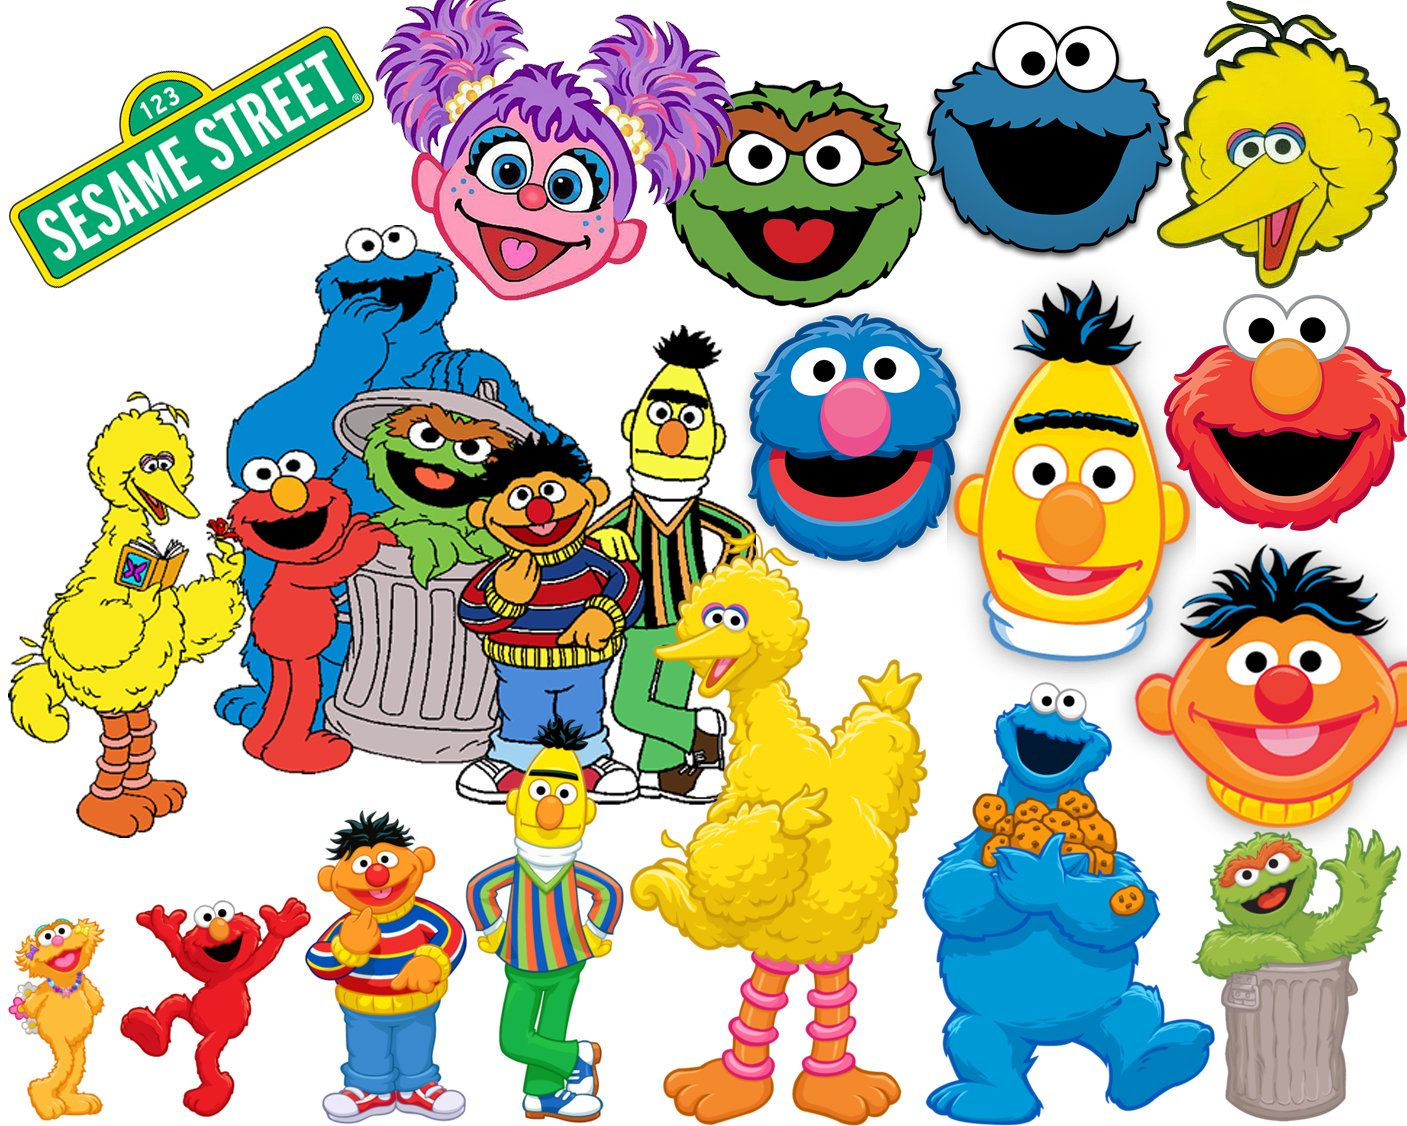 best collection of 130 sesame street clipart 130 high quality rh pinterest co uk sesame street clipart black and white sesame street clip art characters